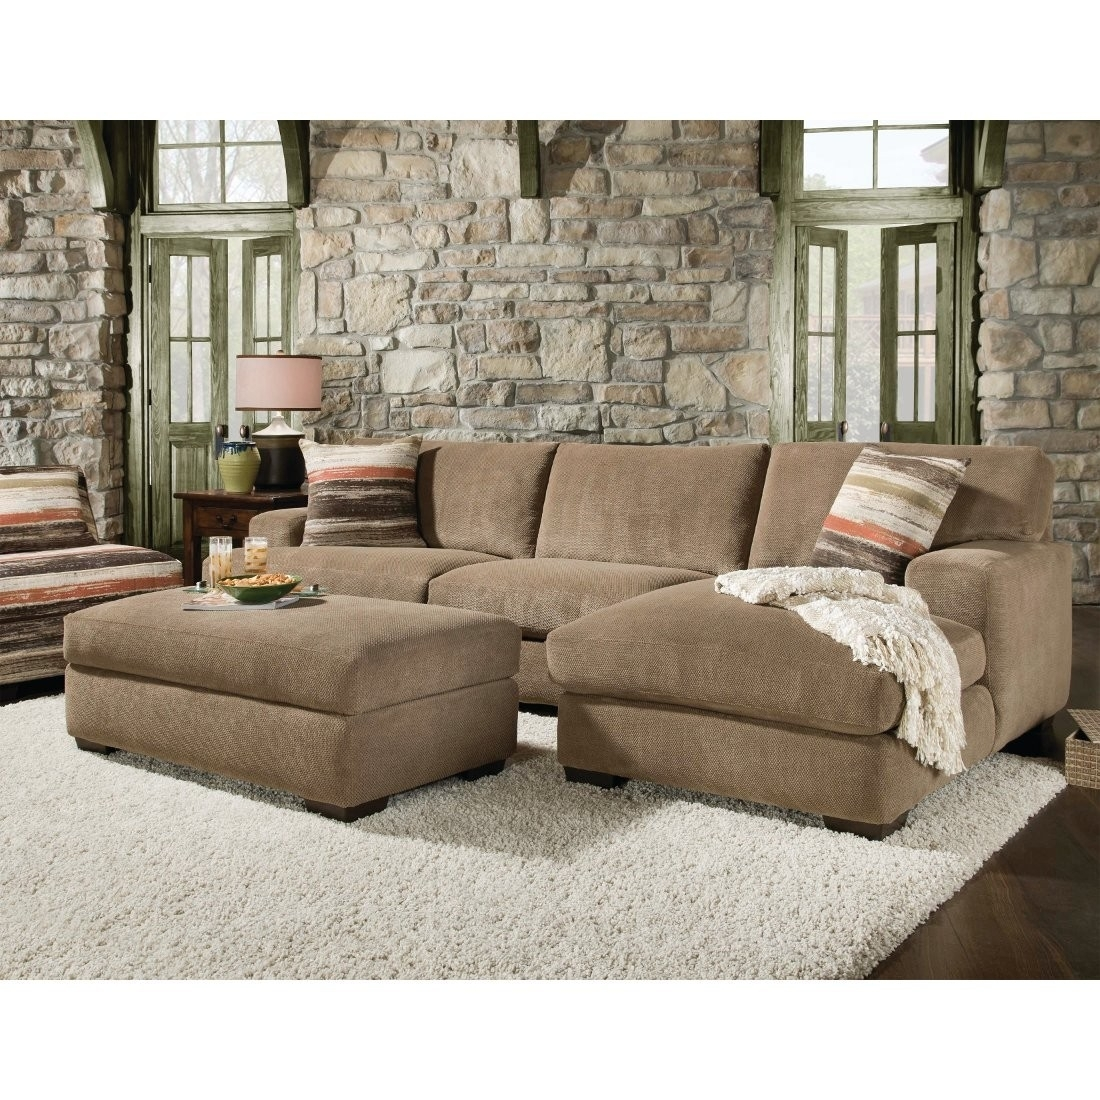 Beautiful Sectional Sofa With Chaise And Ottoman Pictures Inside Sectionals With Chaise And Ottoman (View 2 of 10)